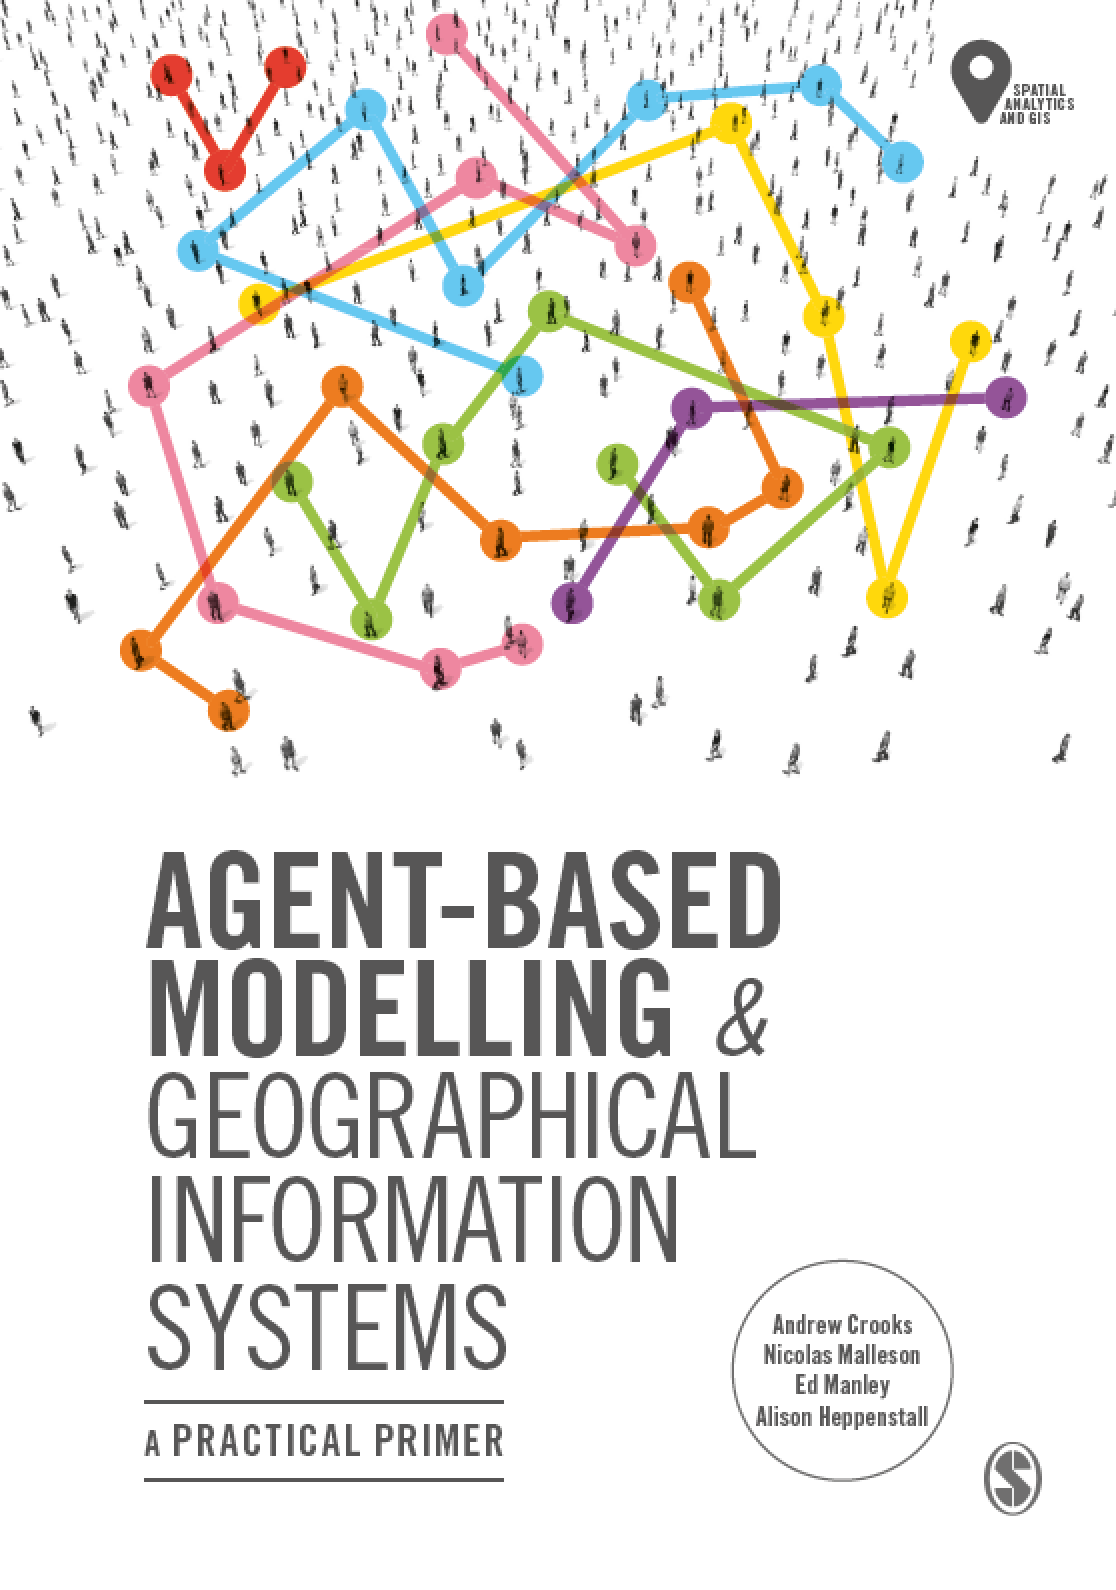 GIS and Agent-Based Modeling: Procedural City Generation Beyond Game